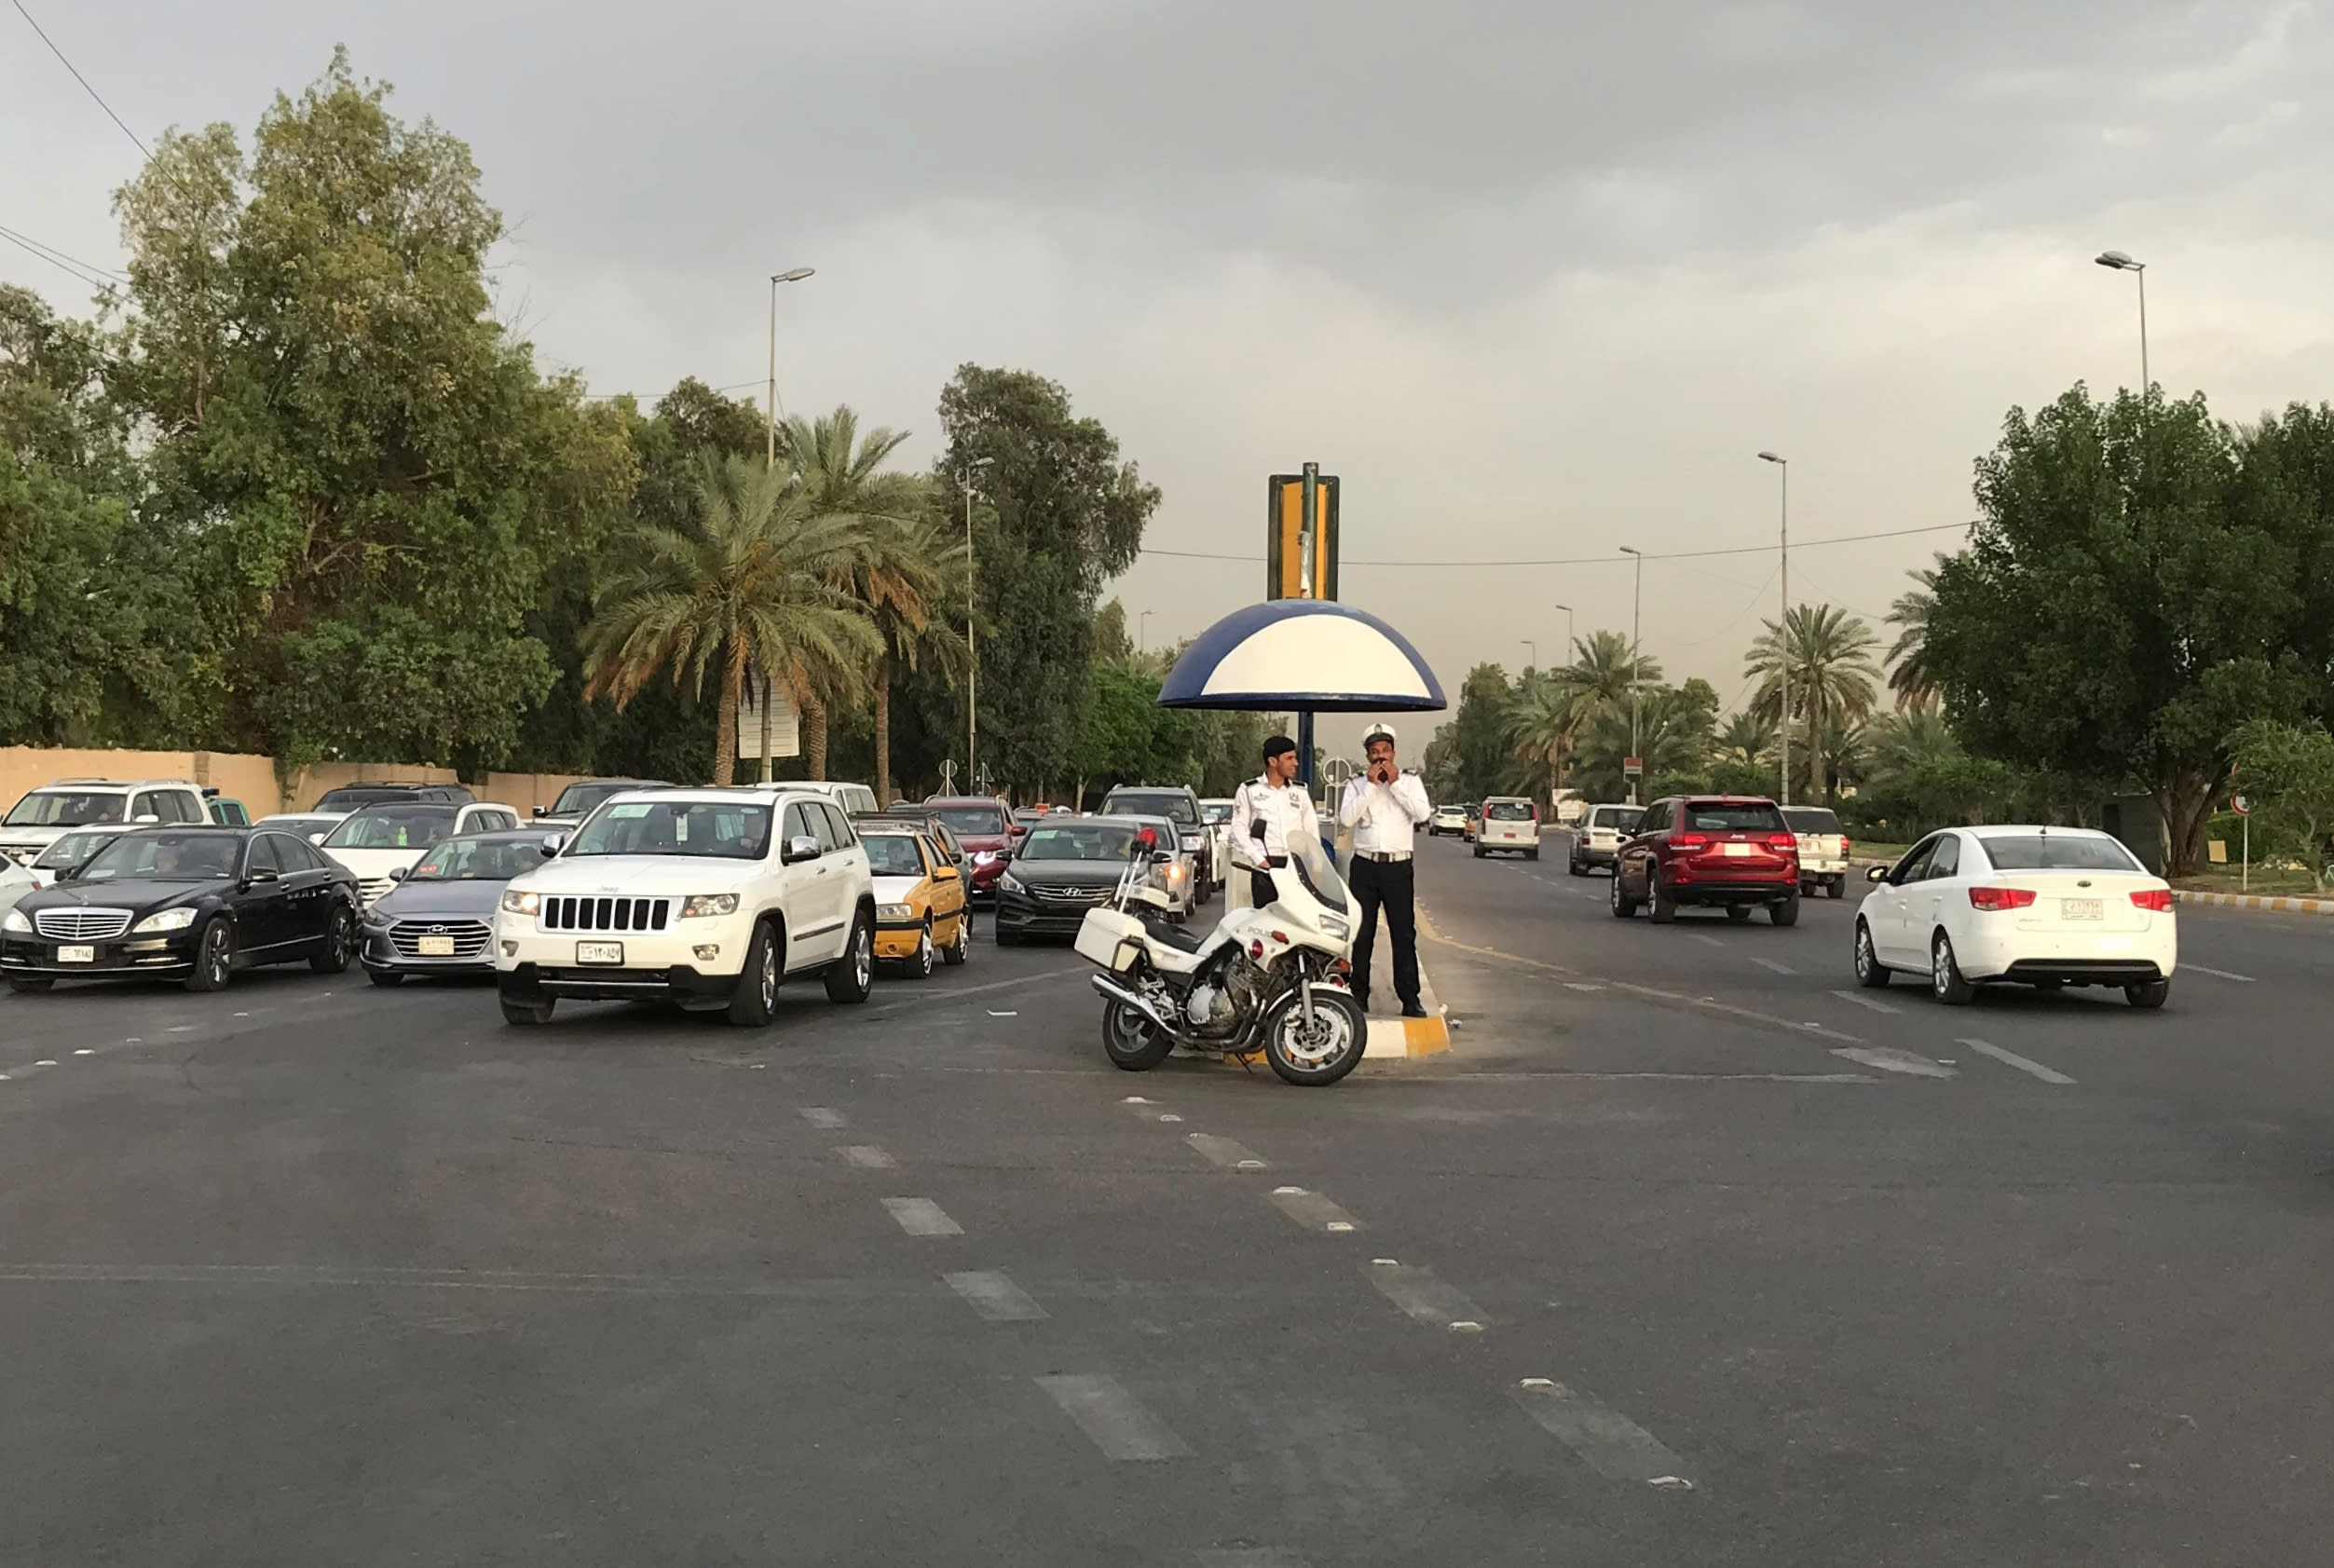 In this Tuesday, May 28, 2019 photo, Iraqi traffic police officers stand at a busy intersection inside the Green Zone in Baghdad, Iraq. The zone has been a barometer for tension and conflict in Iraq for nearly two decades. The sealed-off area, with its palm trees and monuments, is home to the gigantic U.S. Embassy in Iraq, one of the largest diplomatic missions in the world. It has also been home to successive Iraqi governments and is off limits to most Iraqis. (AP Photo/Ali Abdul Hassan)